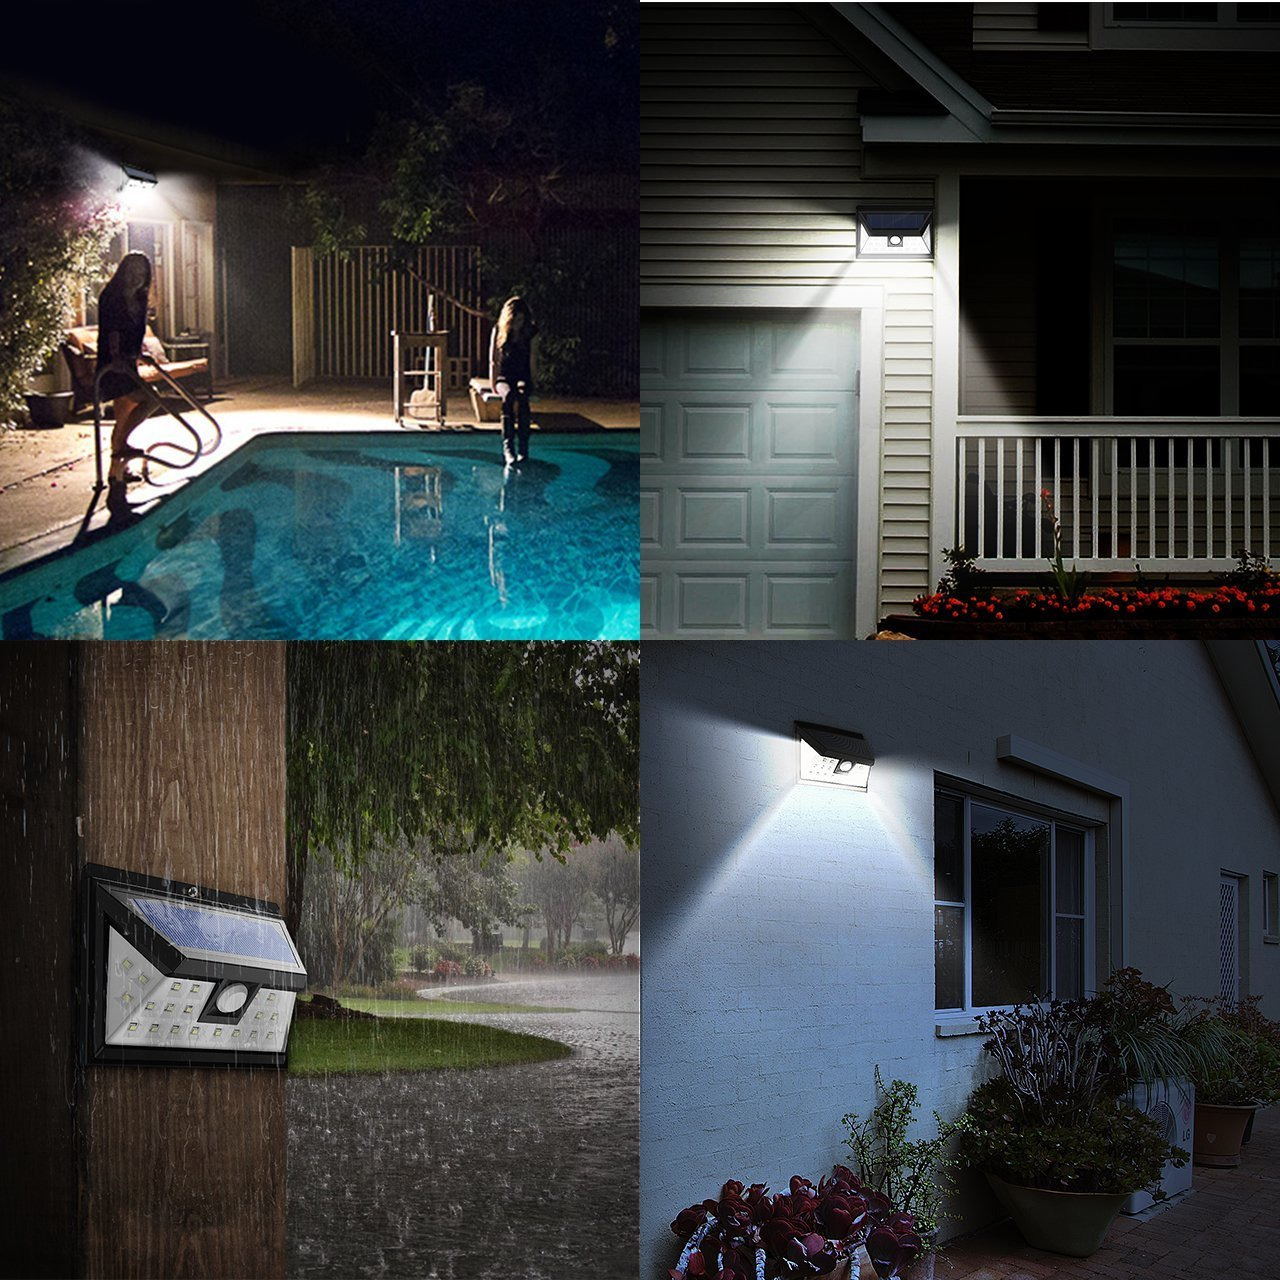 Solar Motion Sensor Security Lights, Mpow 24 LED Solar Powered Light ...